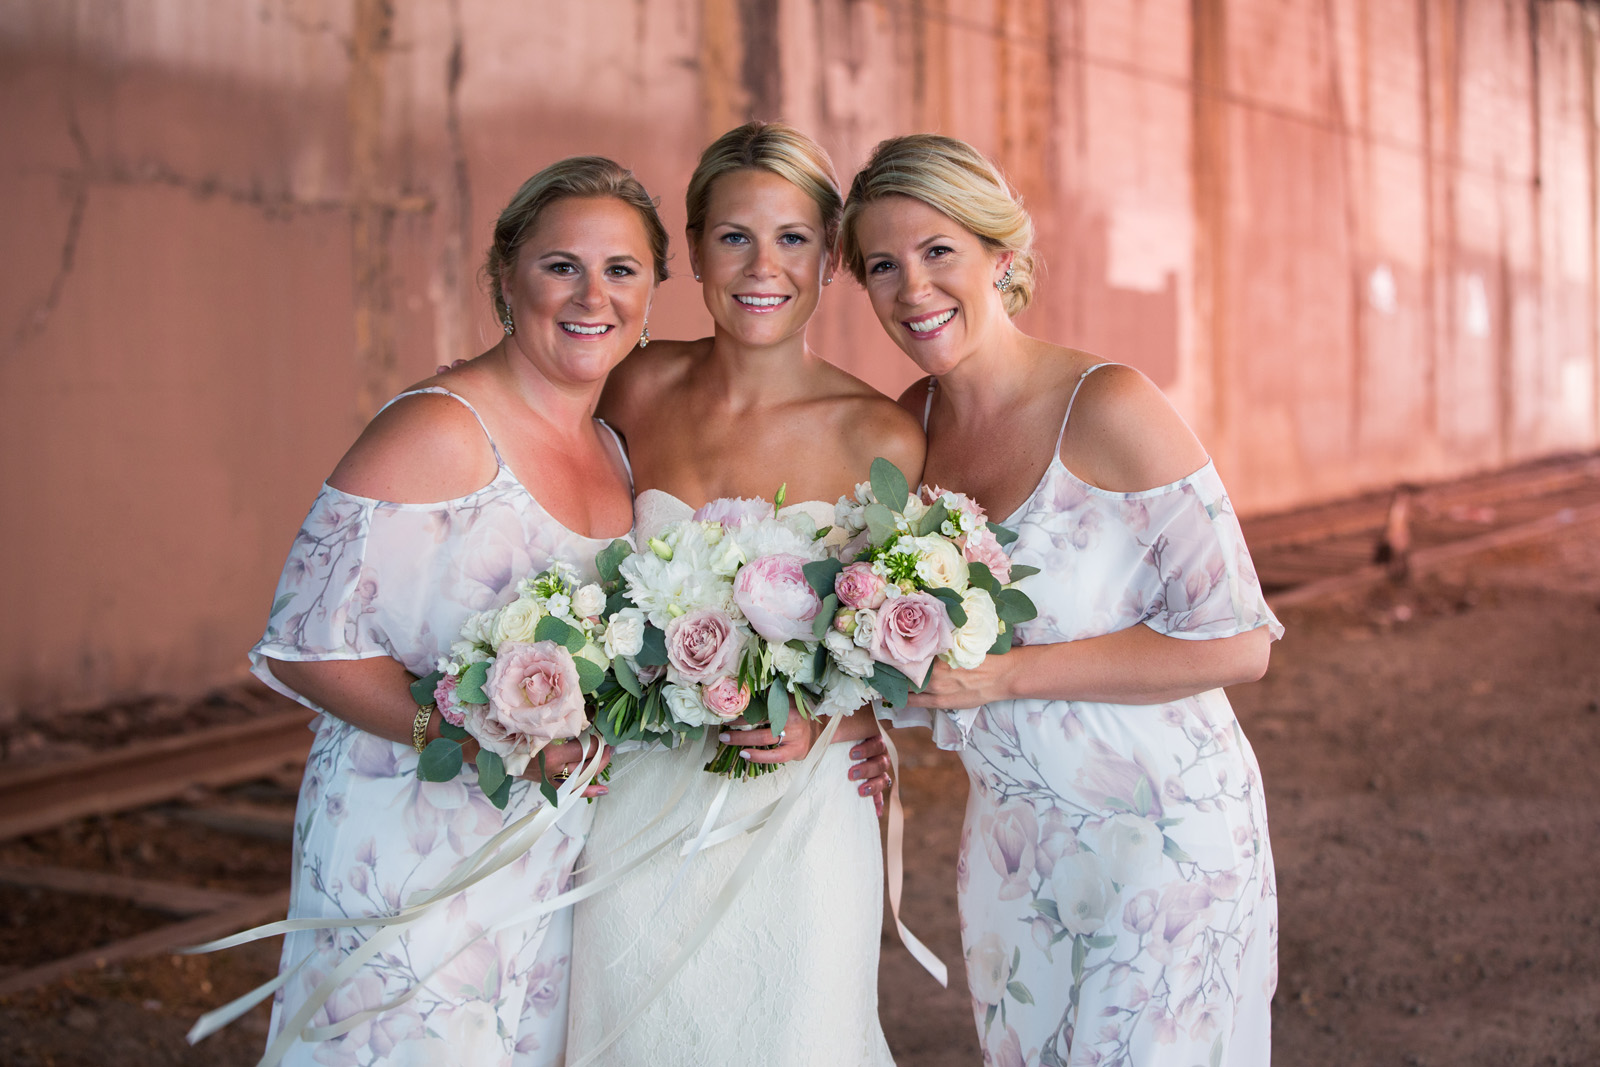 Portrait of bride with her sisters at wedding